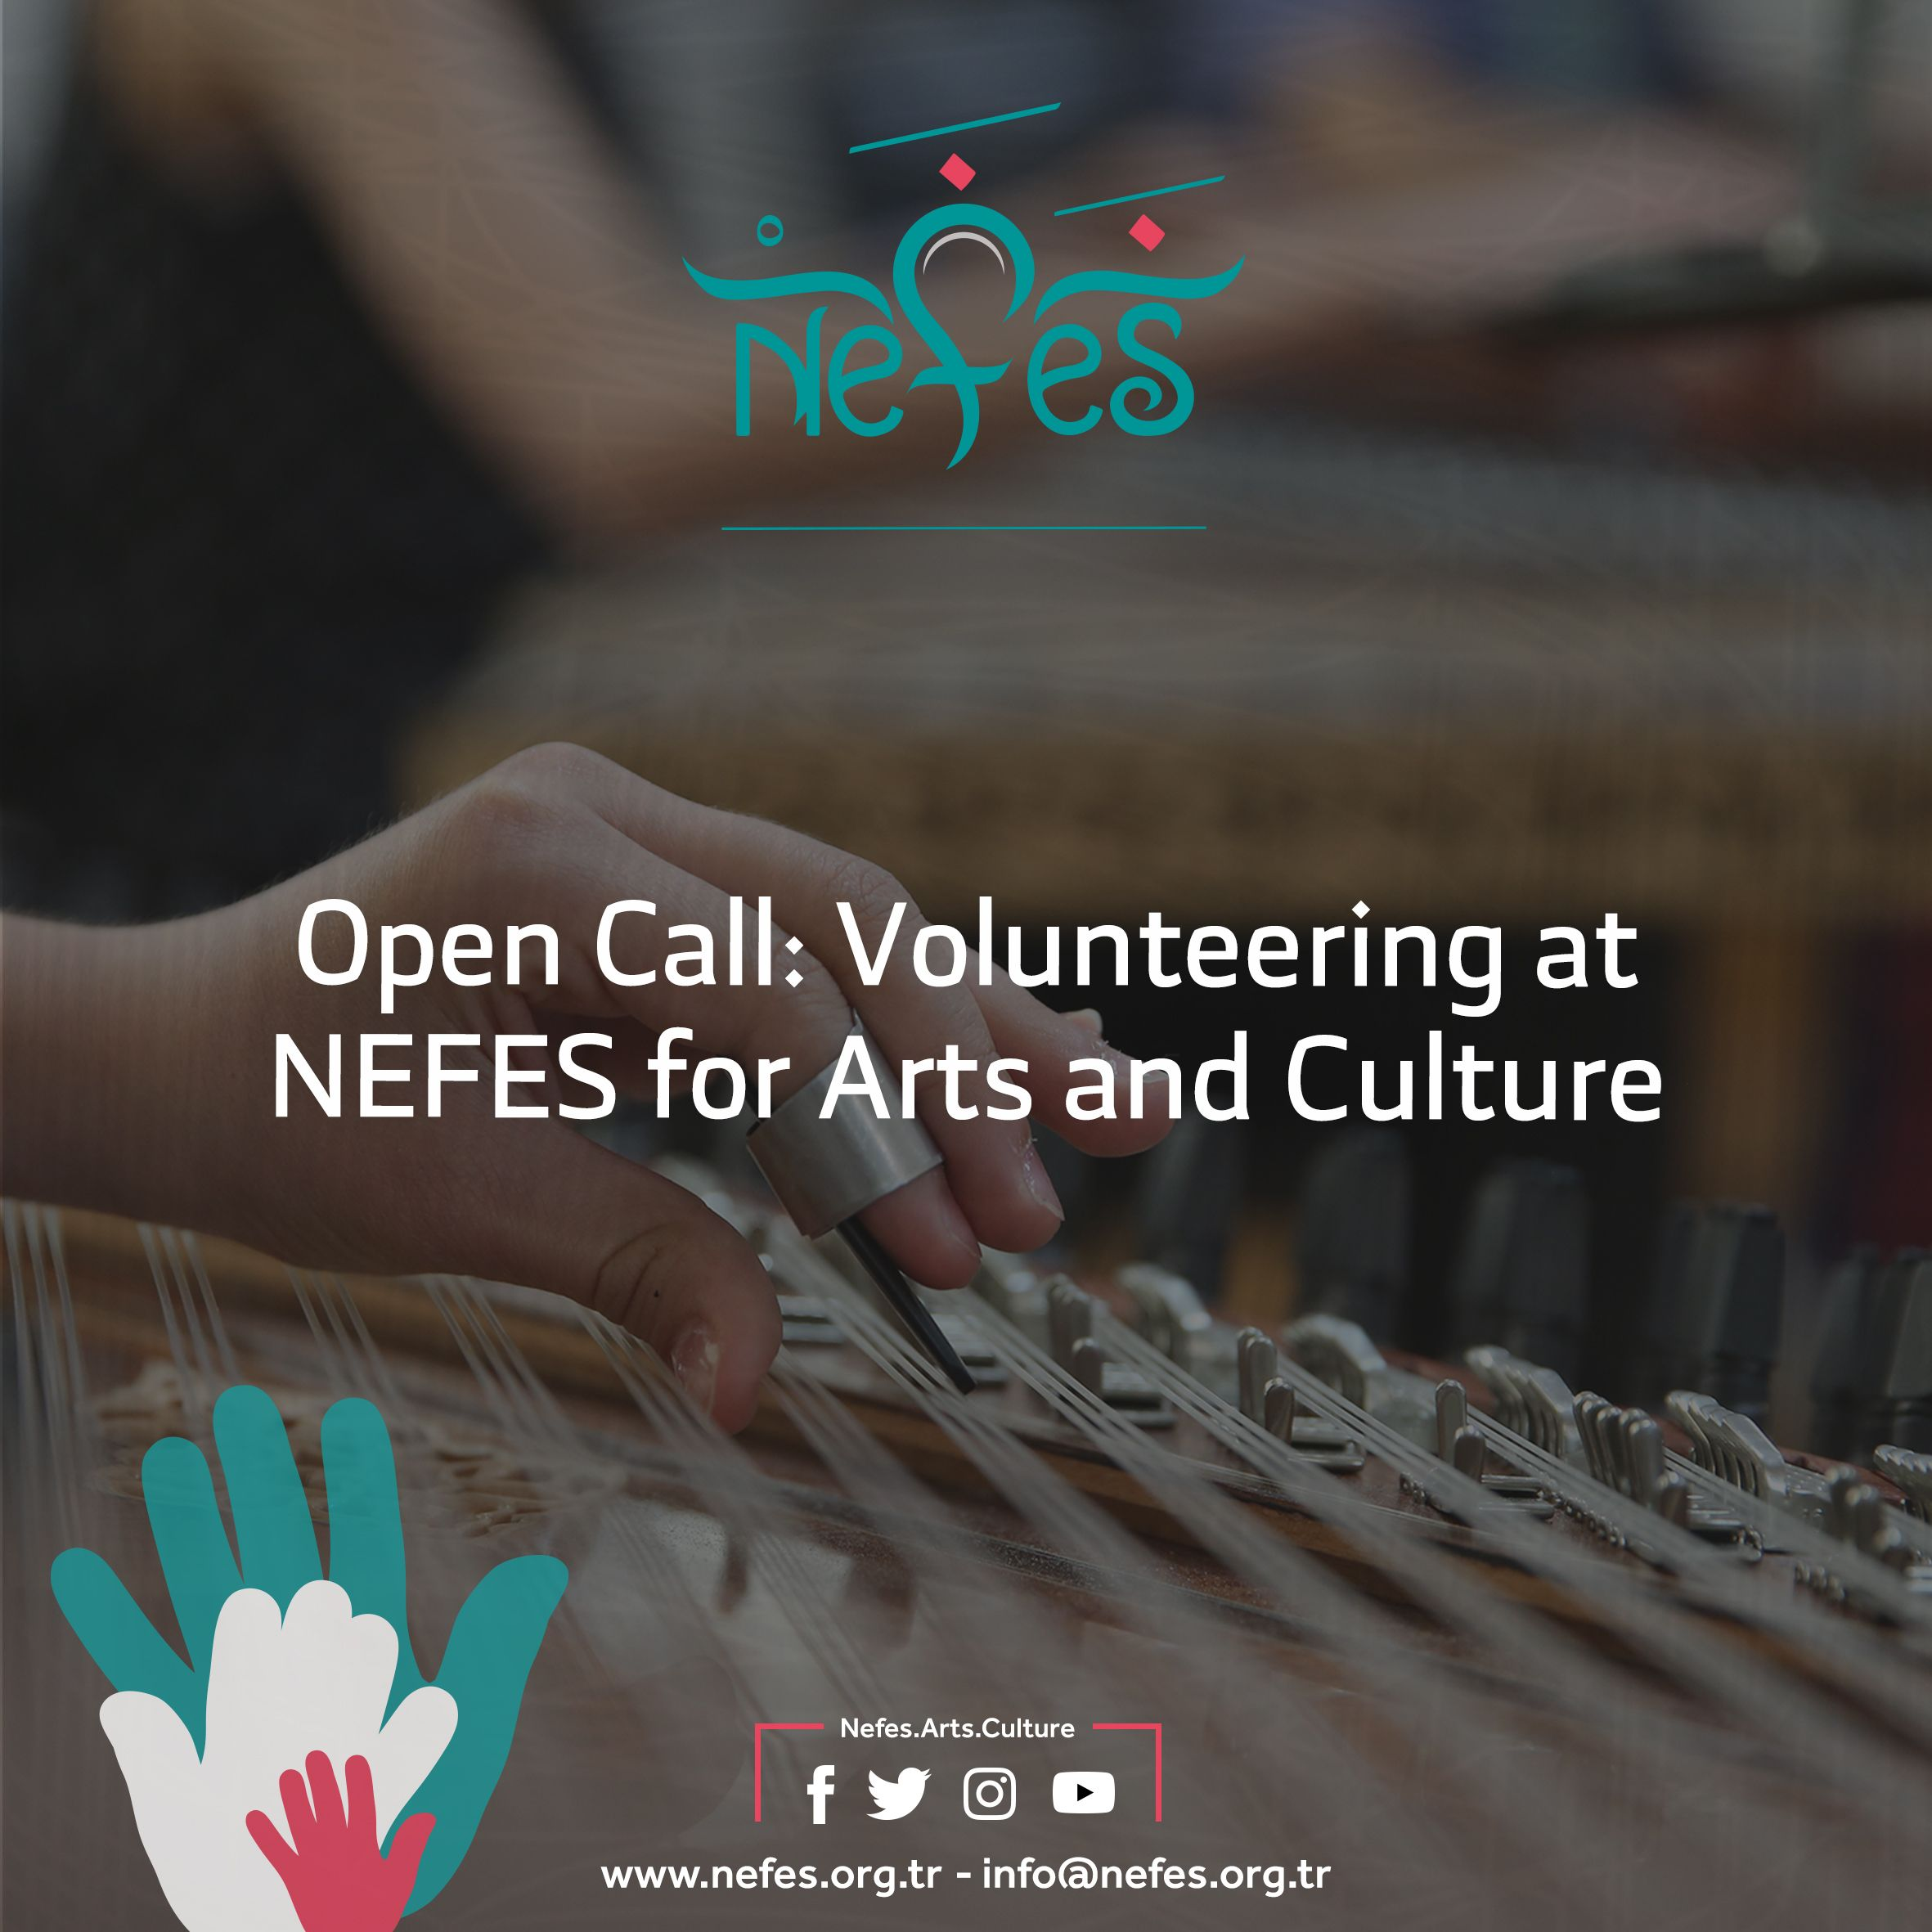 Open Call: Volunteering at NEFES for Arts and Culture